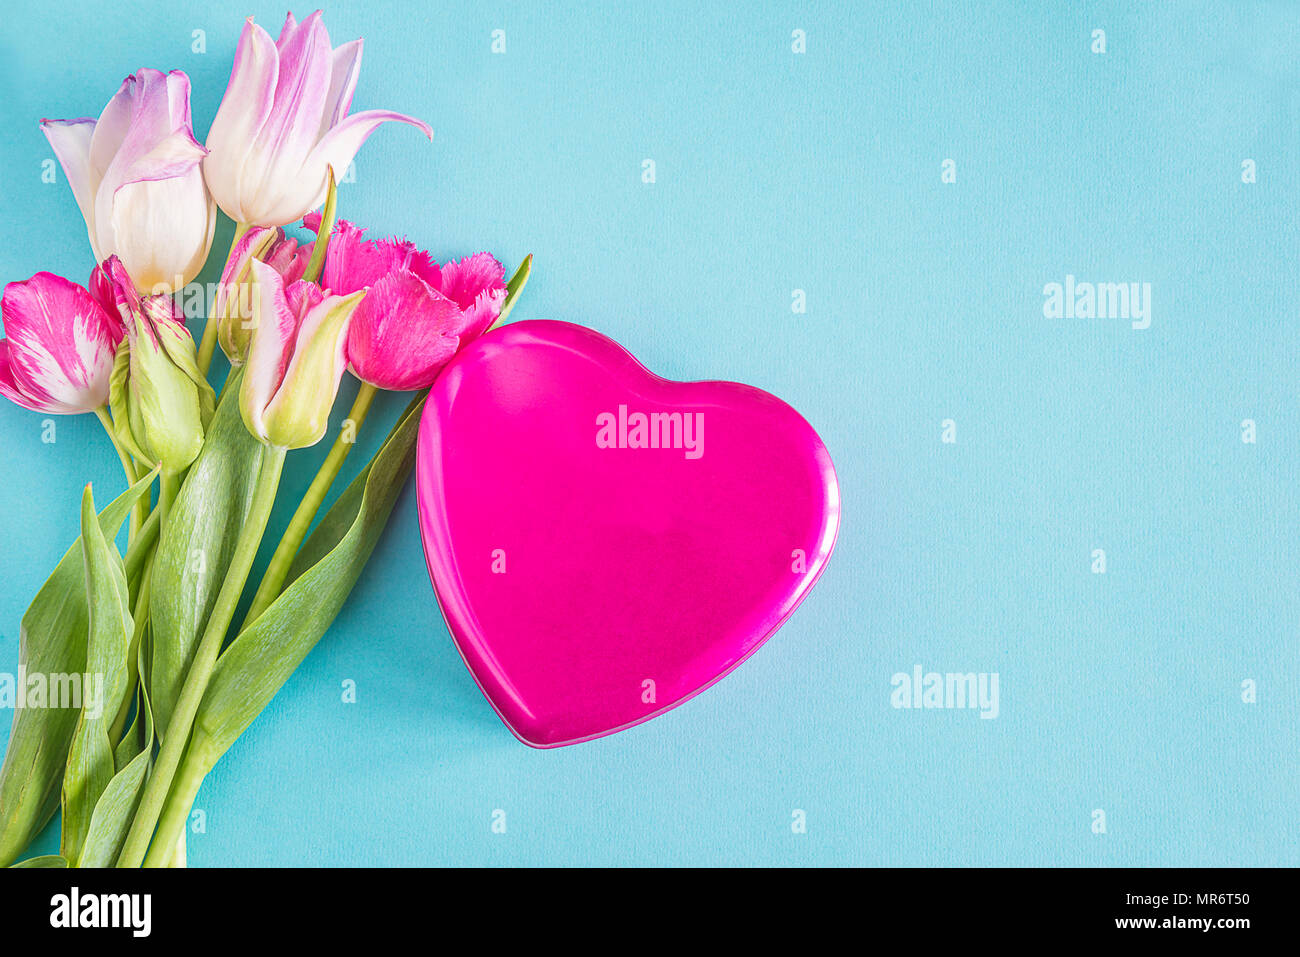 With love greeting card stock photo 186391436 alamy with love greeting card m4hsunfo